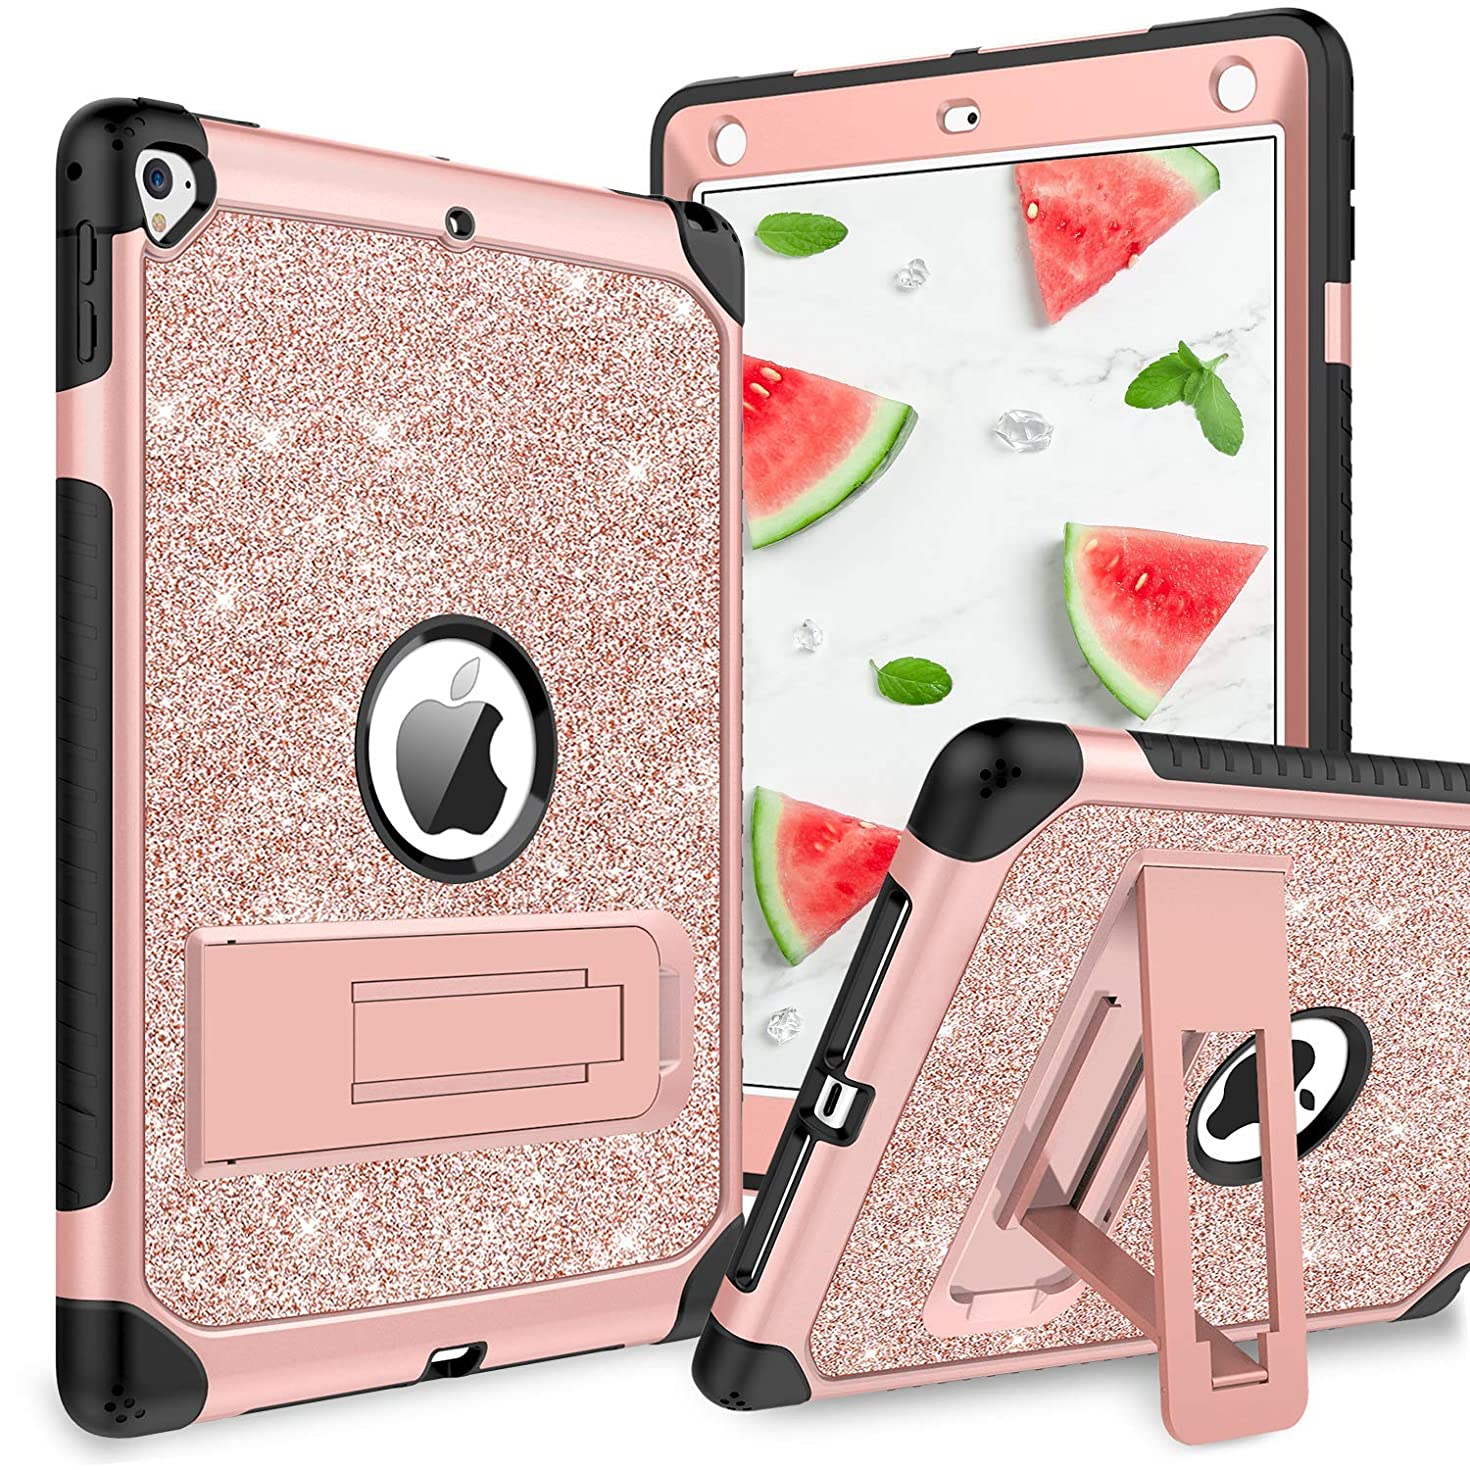 YINLAI Case for iPad 9.7 2017/2018/Air 2/iPad Pro 9.7, Glitters 3 in1 Durable Sturdy Kickstand Full Body Protective Shockproof Girly Women Kids Tab Cover for iPad 9.7 5th/6th/Air 2/Pro 9.7, Rose Gold